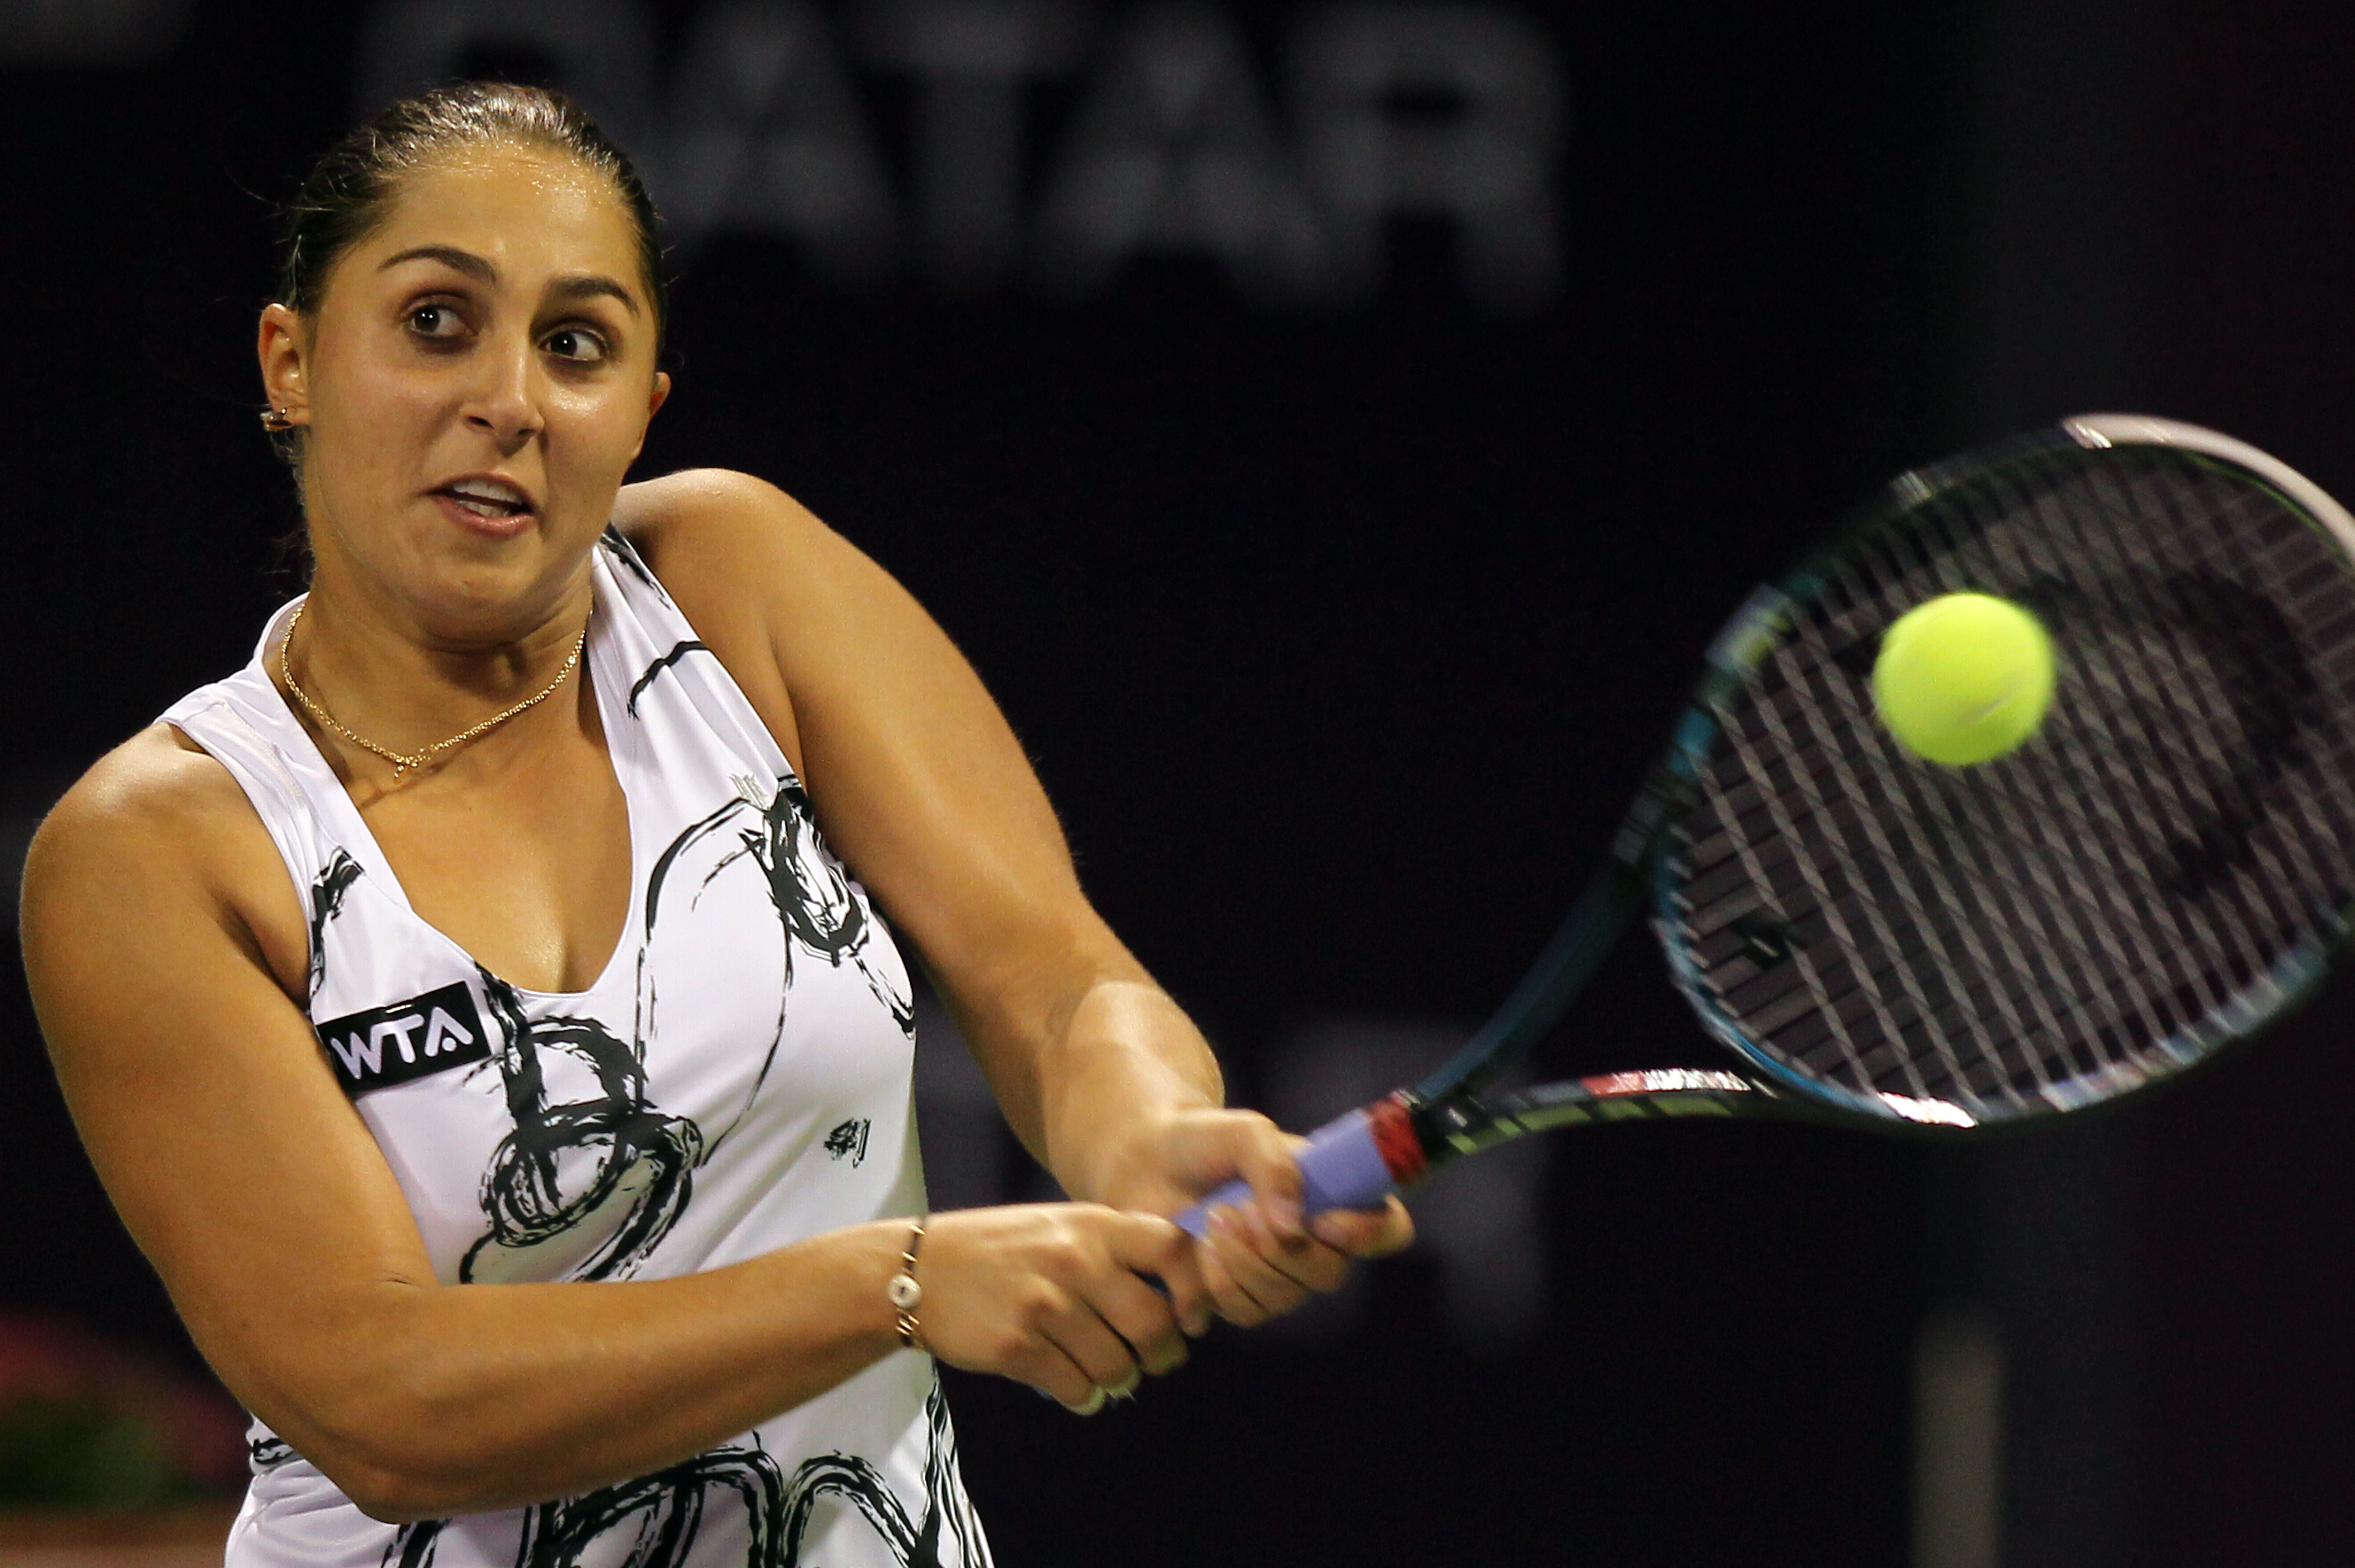 Tamira Paszek of Austria returns the ball during her match against Ana Ivanovic of Serbia on the first day of the WTA Qatar Ladies Open in Doha, Qatar, Monday, Feb. 11, 2013. (AP Photo/Osama Faisal)